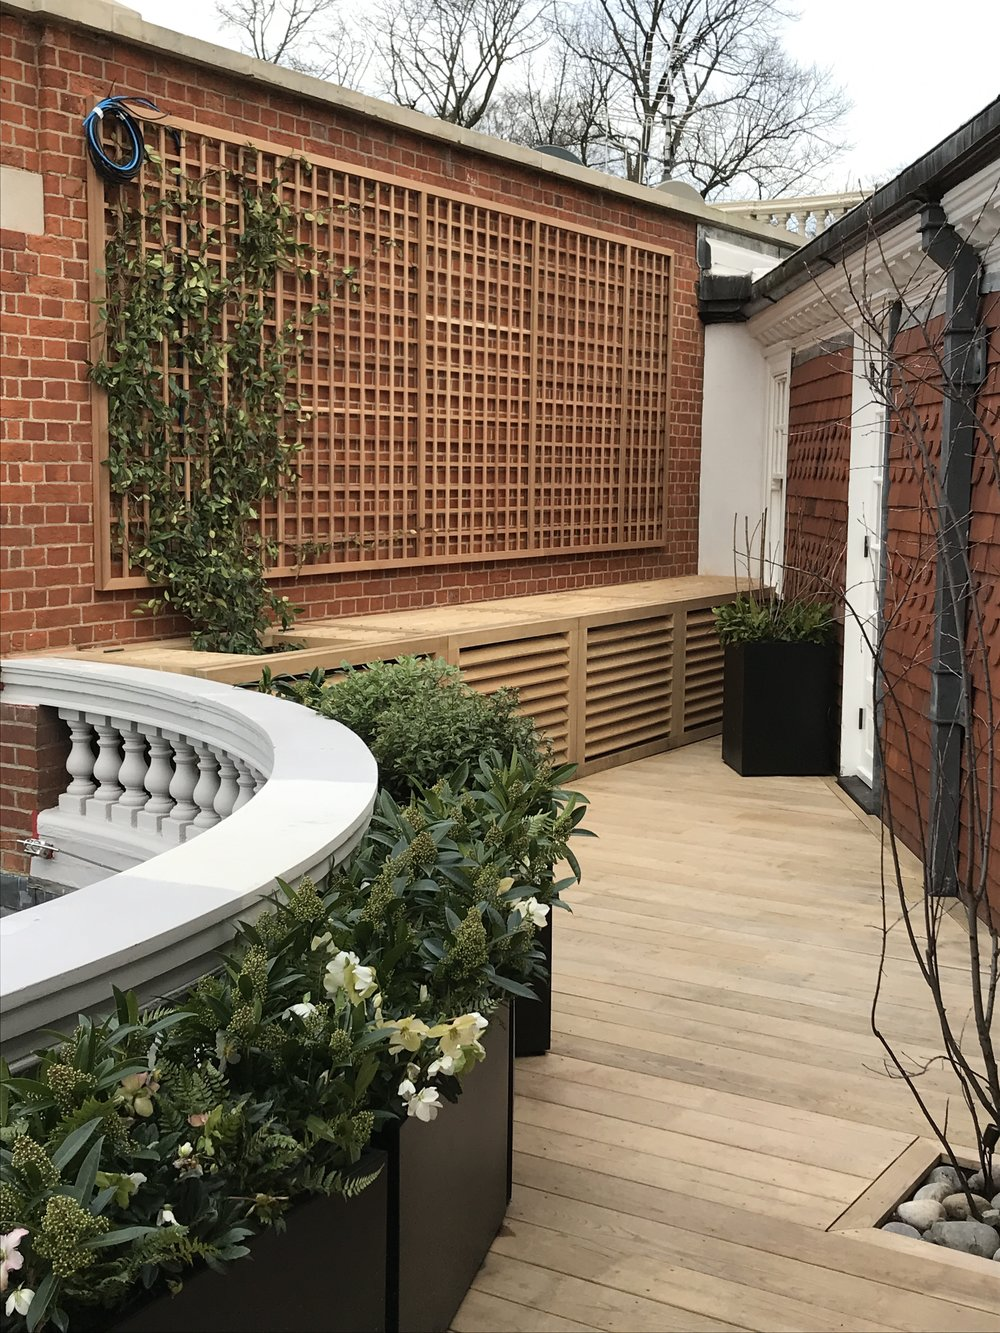 Terrace garden deck, trellis and and air conditioning unit covers in Wibledon